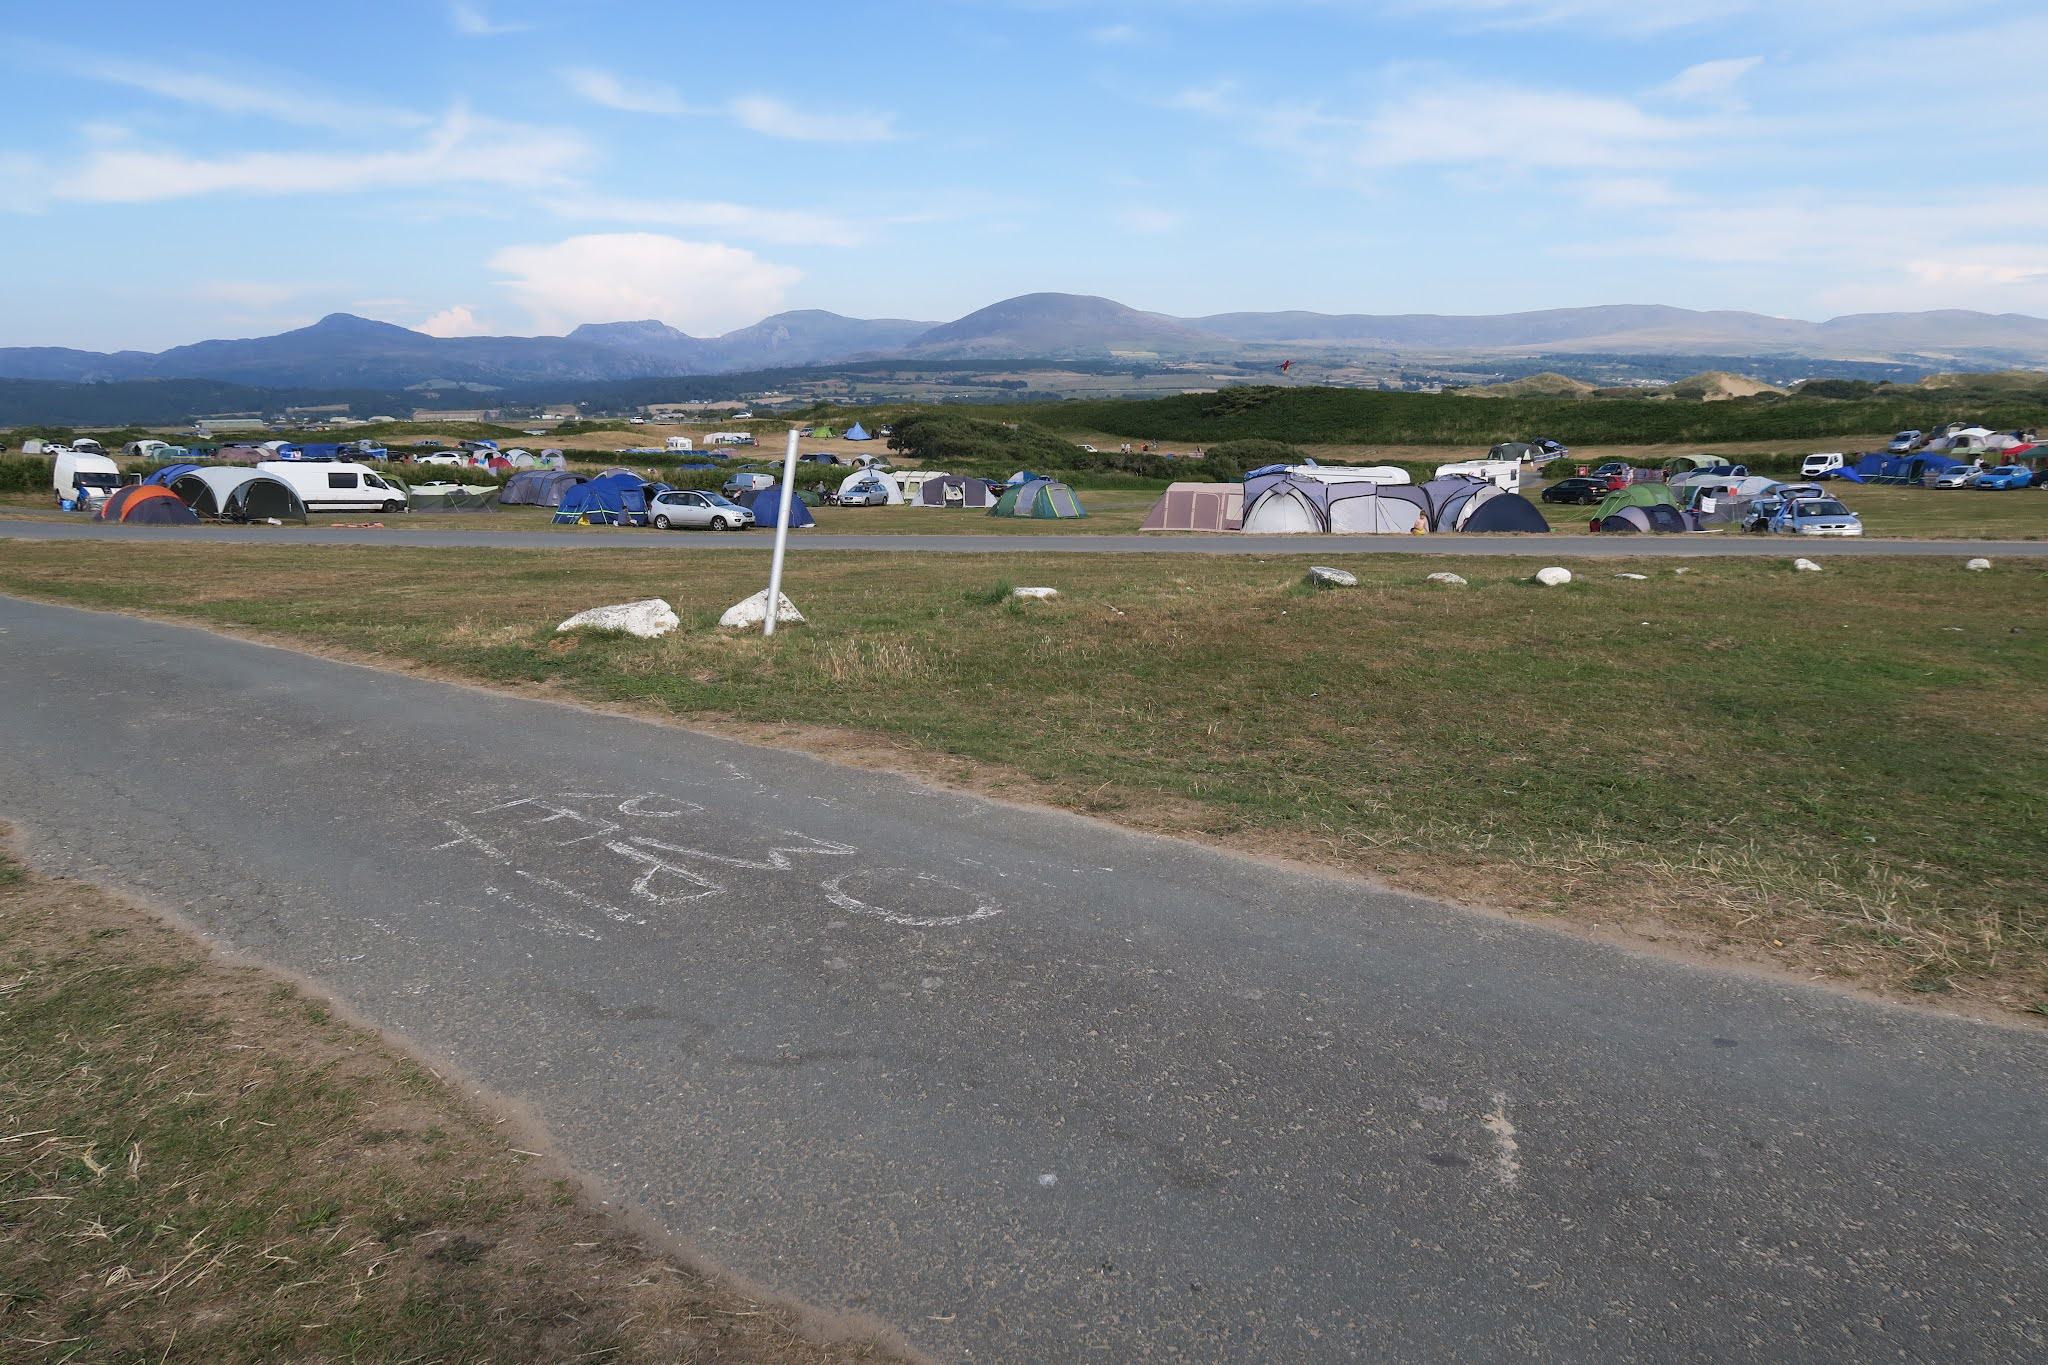 Looking across the campsite. Tents and campervans are scattered across the land. The mountainous Snowdonia National Park can be seen in the background.